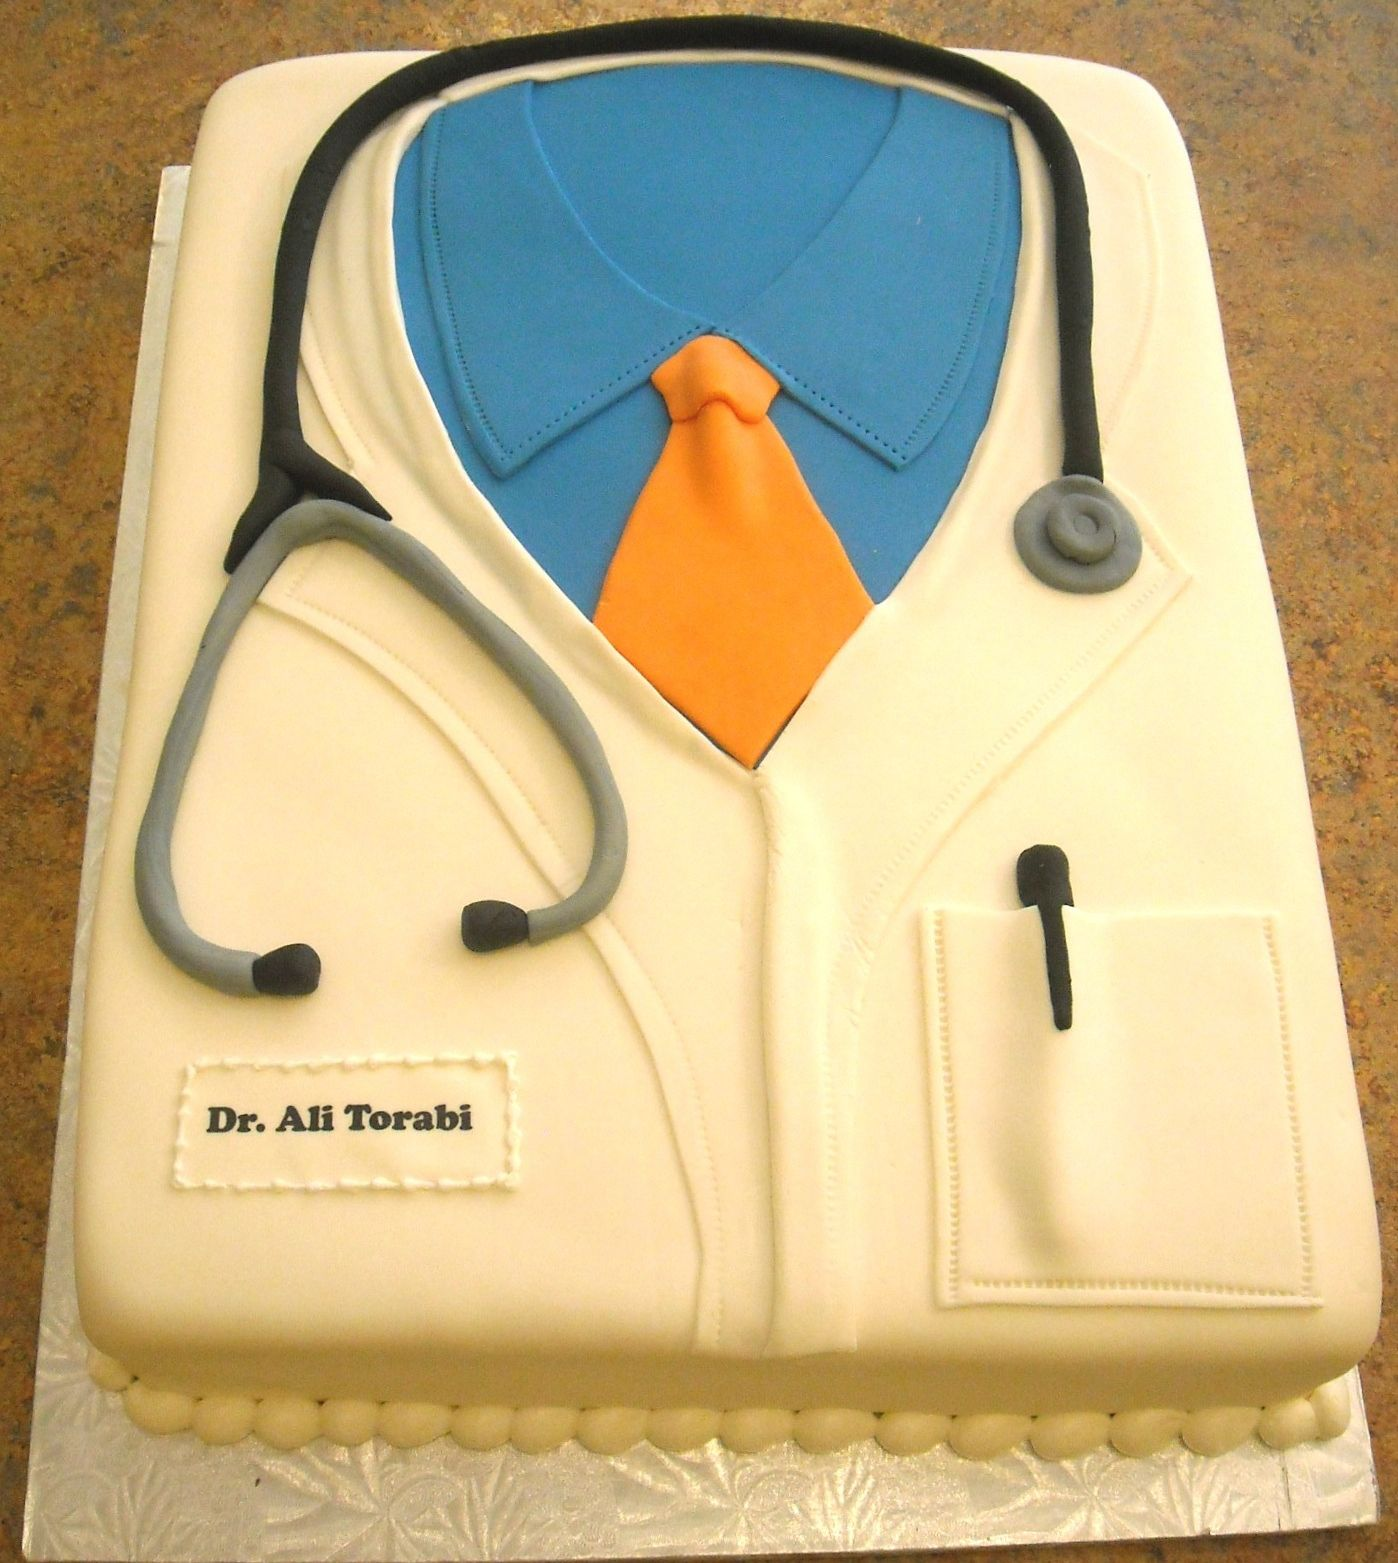 Dentist Lab Coat Cake